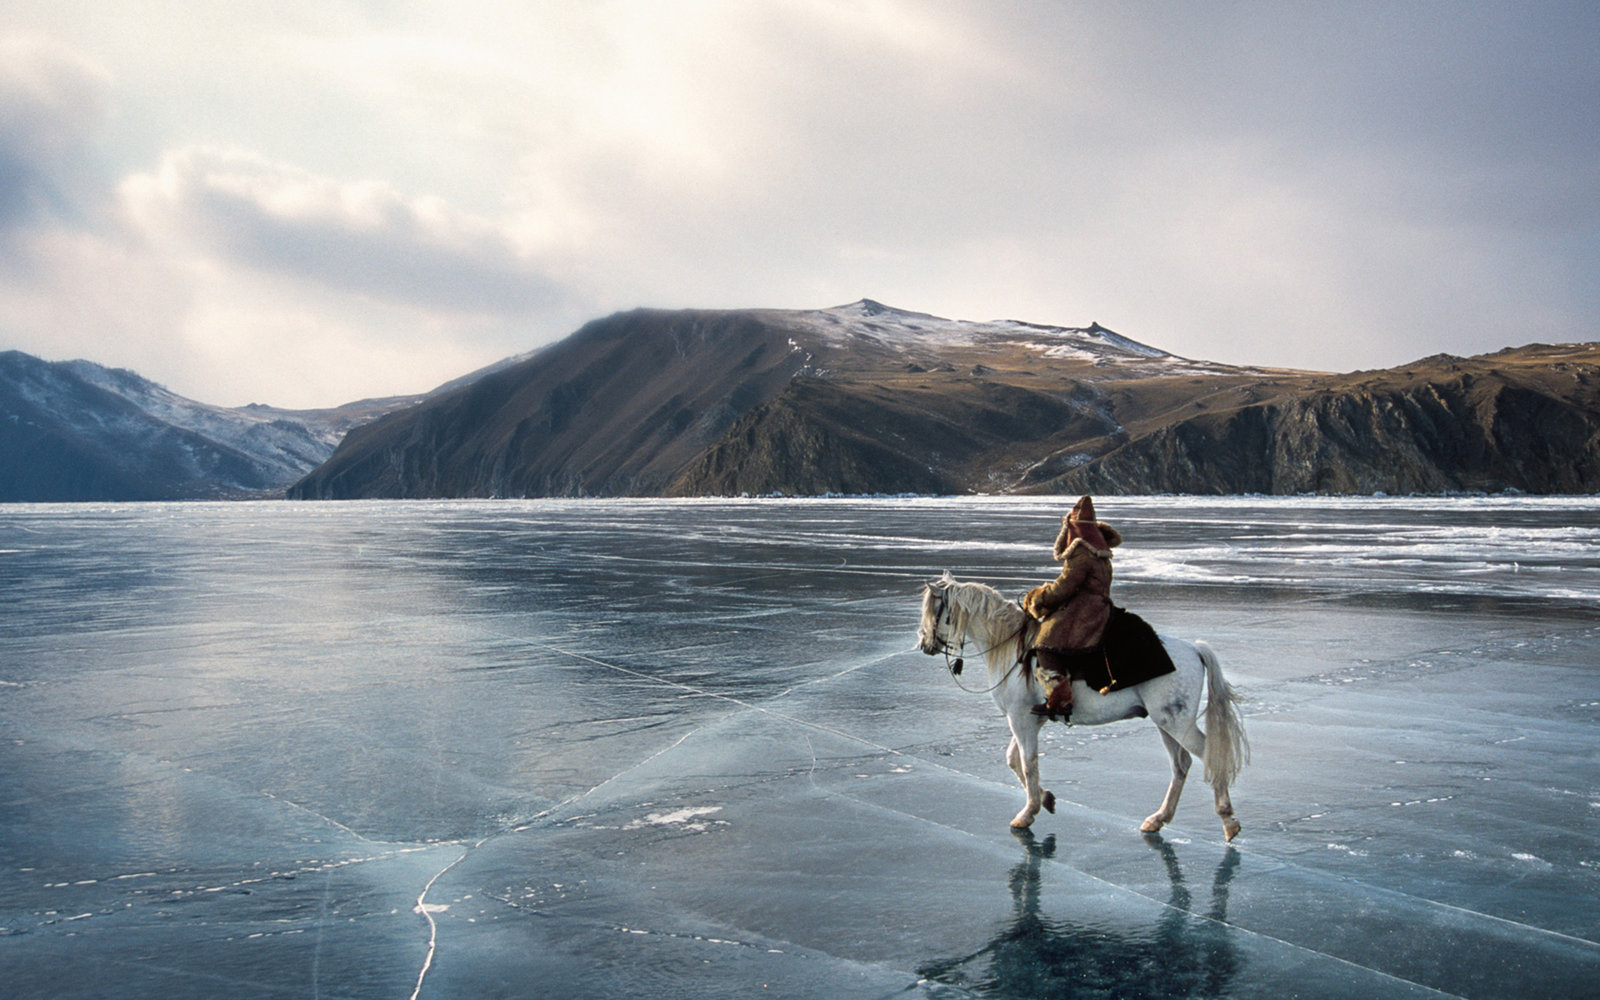 On the shooting of  Serko , a film reenacting the longest horse-ride ever done in the history of man, : 9000 Km in 200 days from the Amur River to St Petersburg, by a Cossack named Dimitri Petchkov and his horse Serko  in the winter of 1890. Siberia, Irku